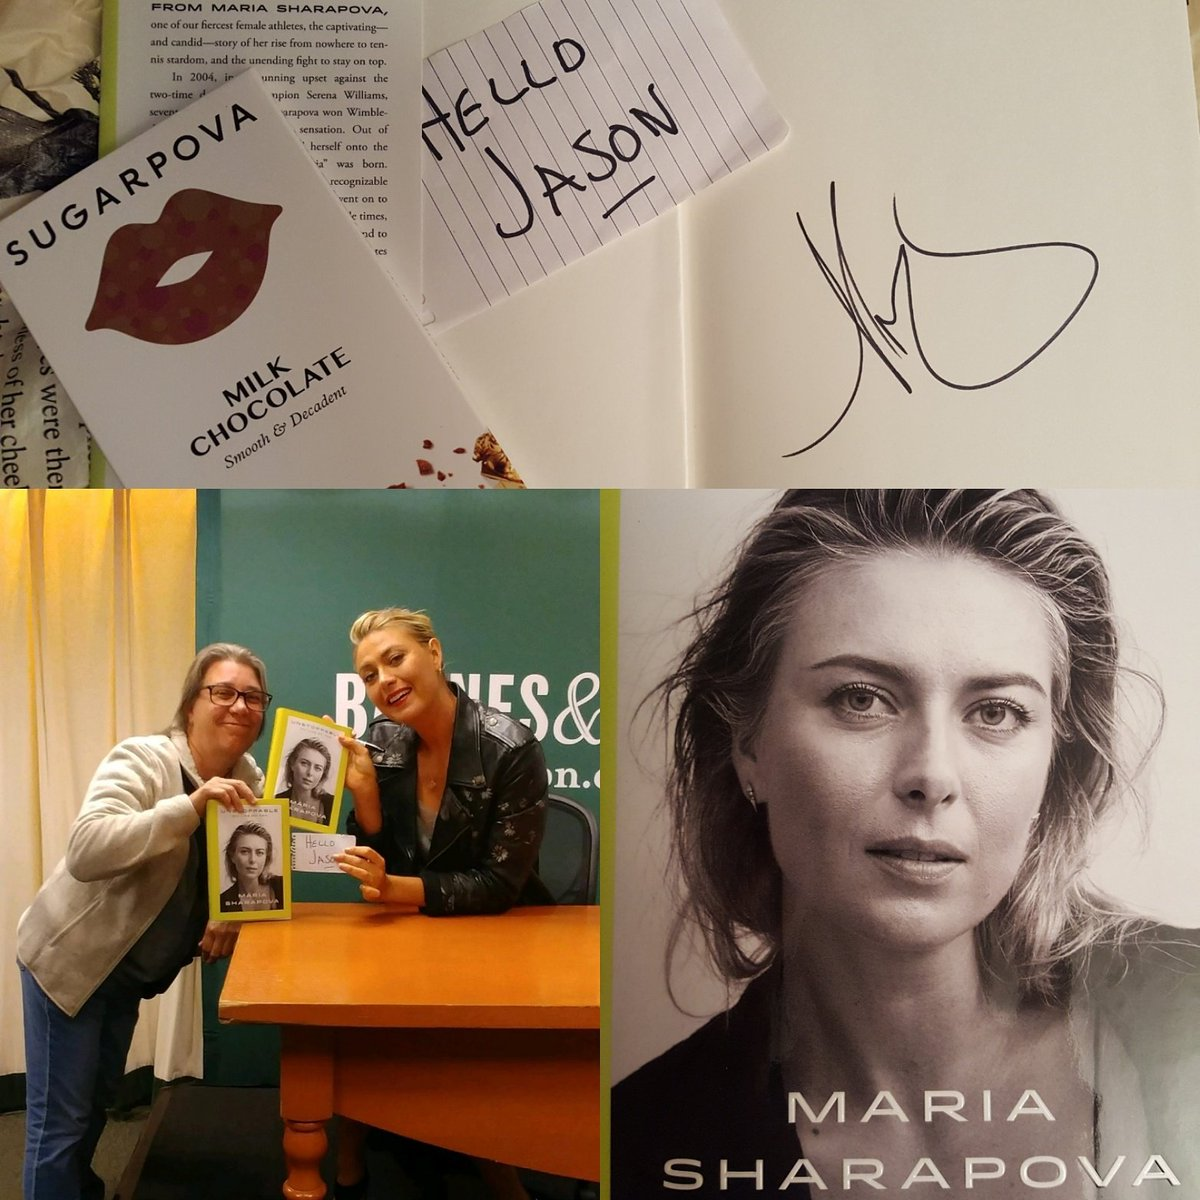 RT @yack2783: Because I have the most awesome aunt ever!!!  Thanks for being just as awesome @MariaSharapova https://t.co/5jL5CeXXCt